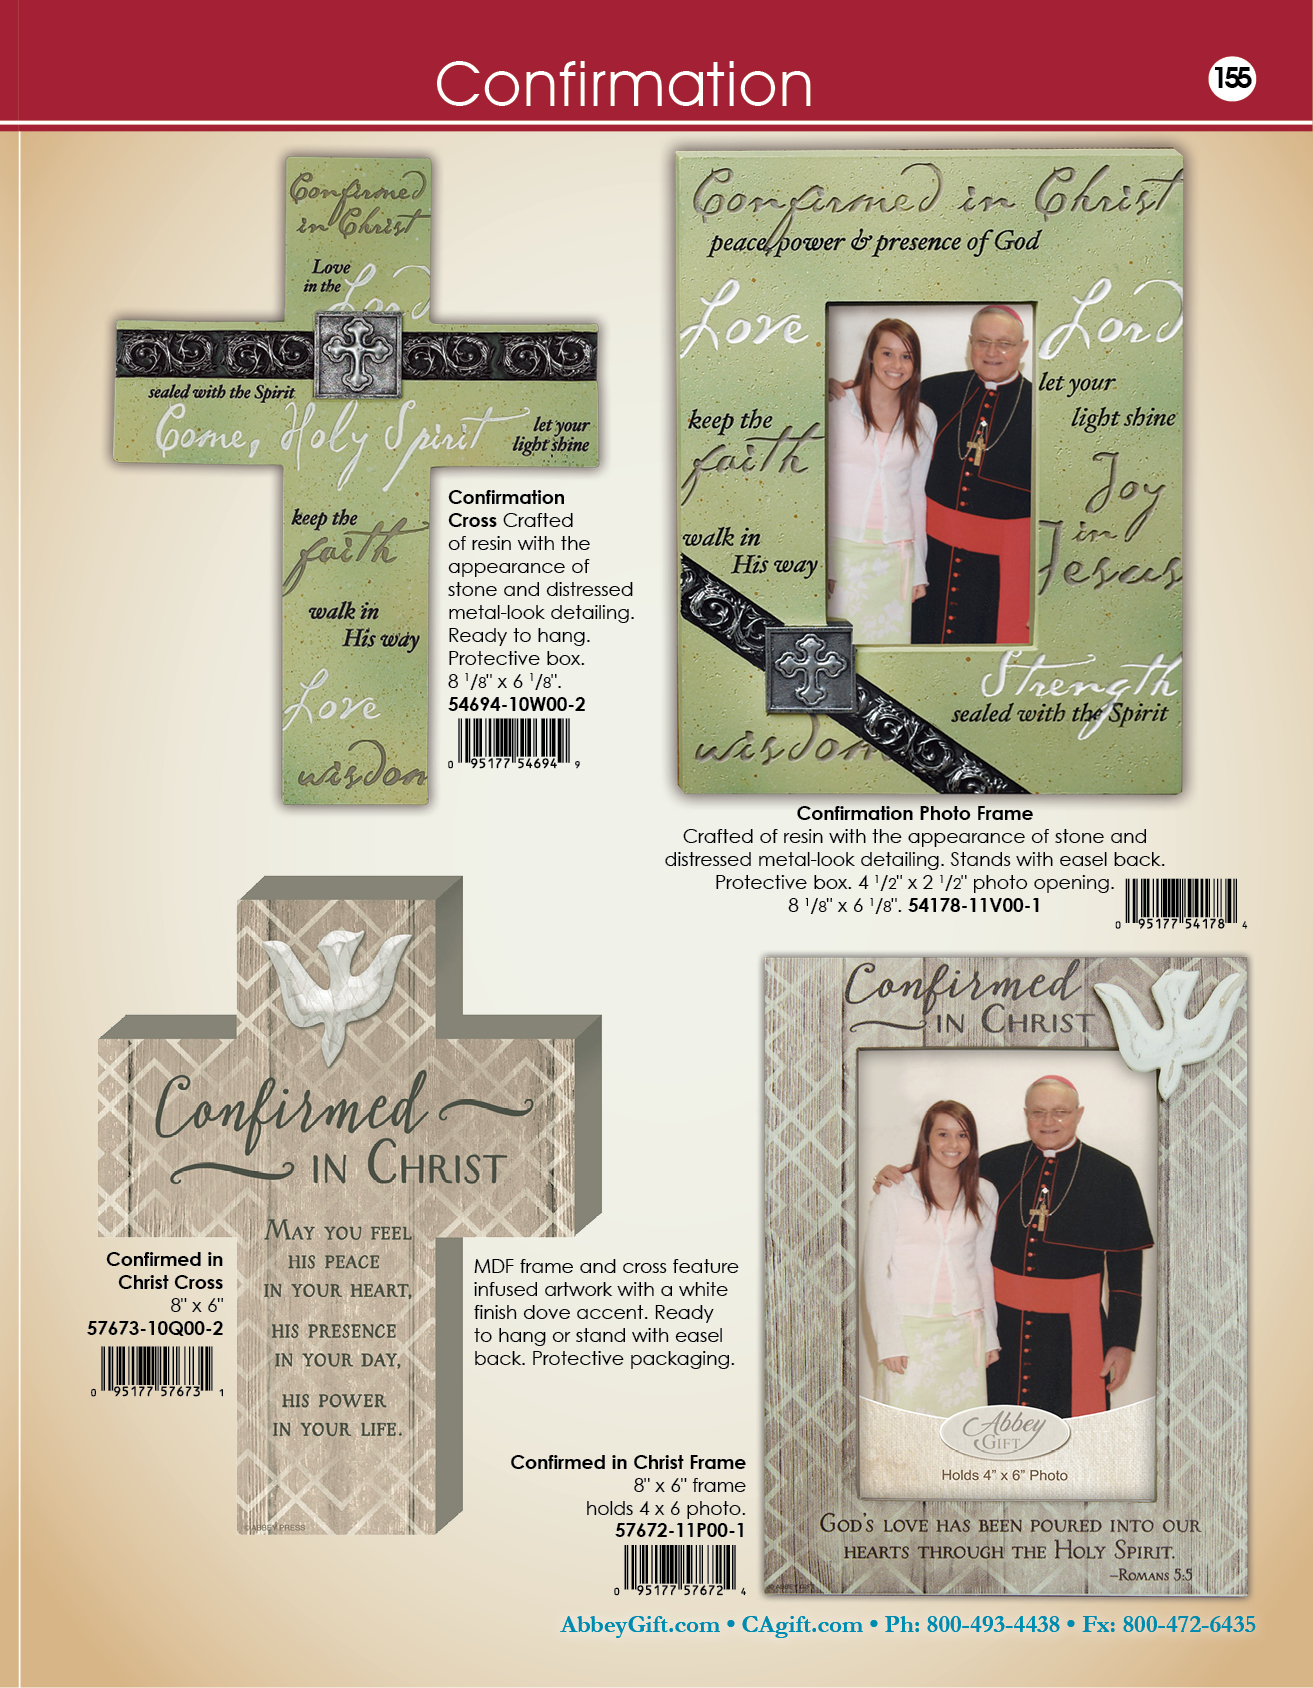 CA & Abbey Gift Pgs155